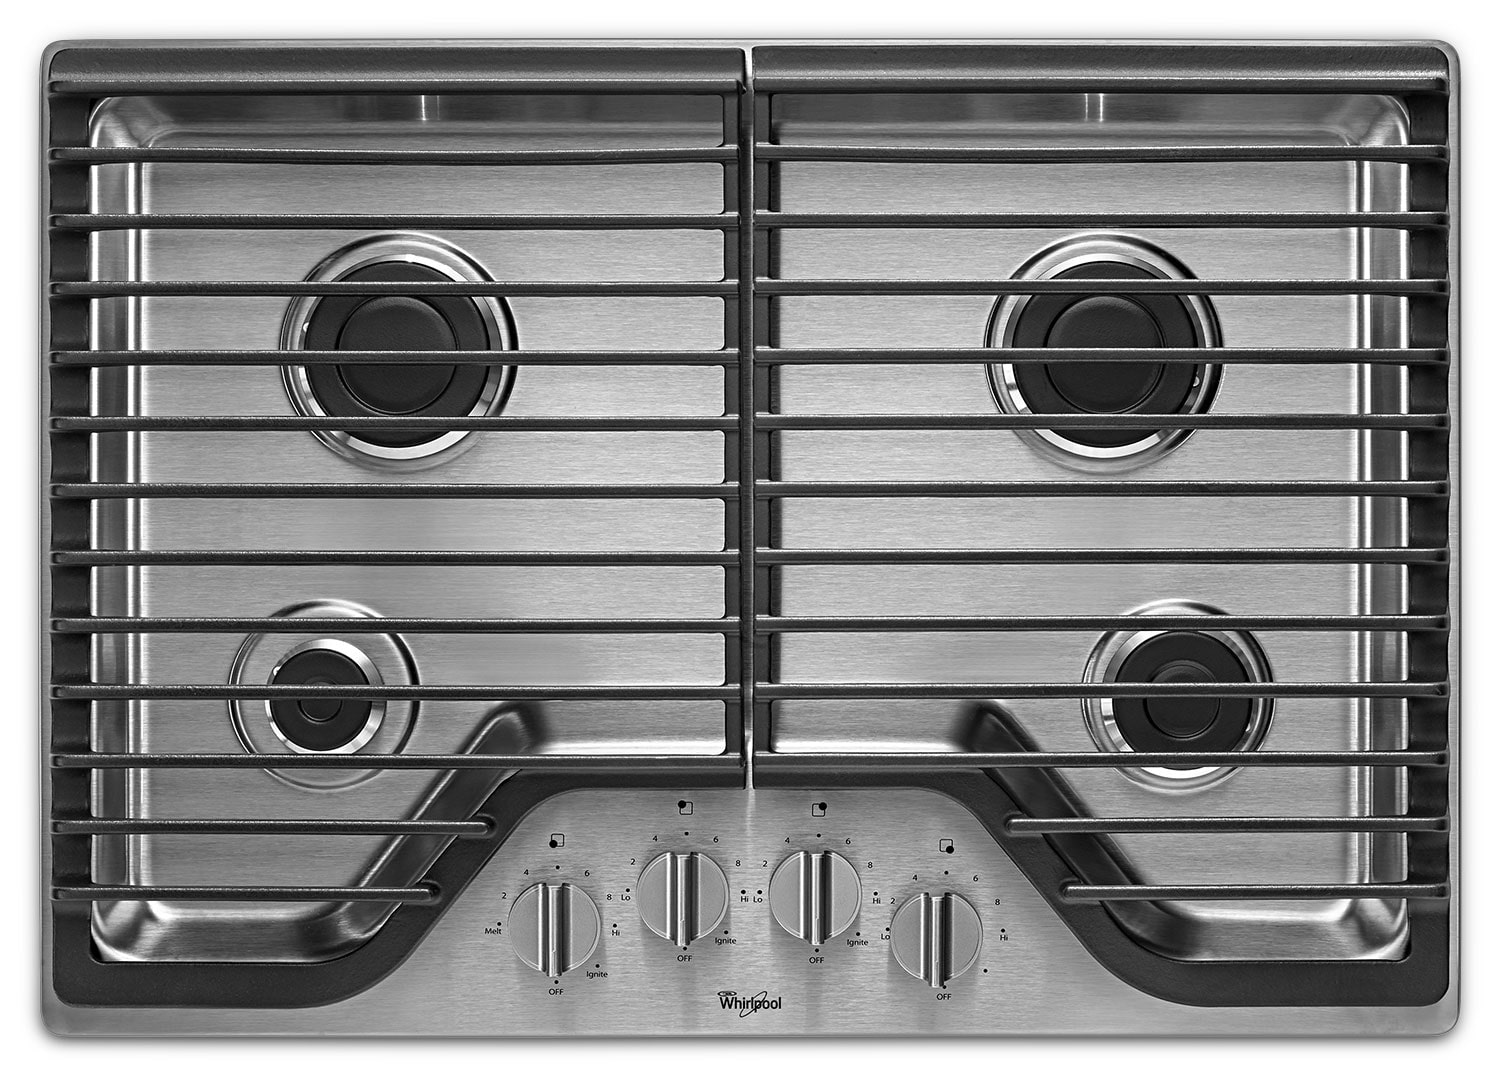 Whirlpool Stainless Steel Gas Cooktop - WCG51US0DS